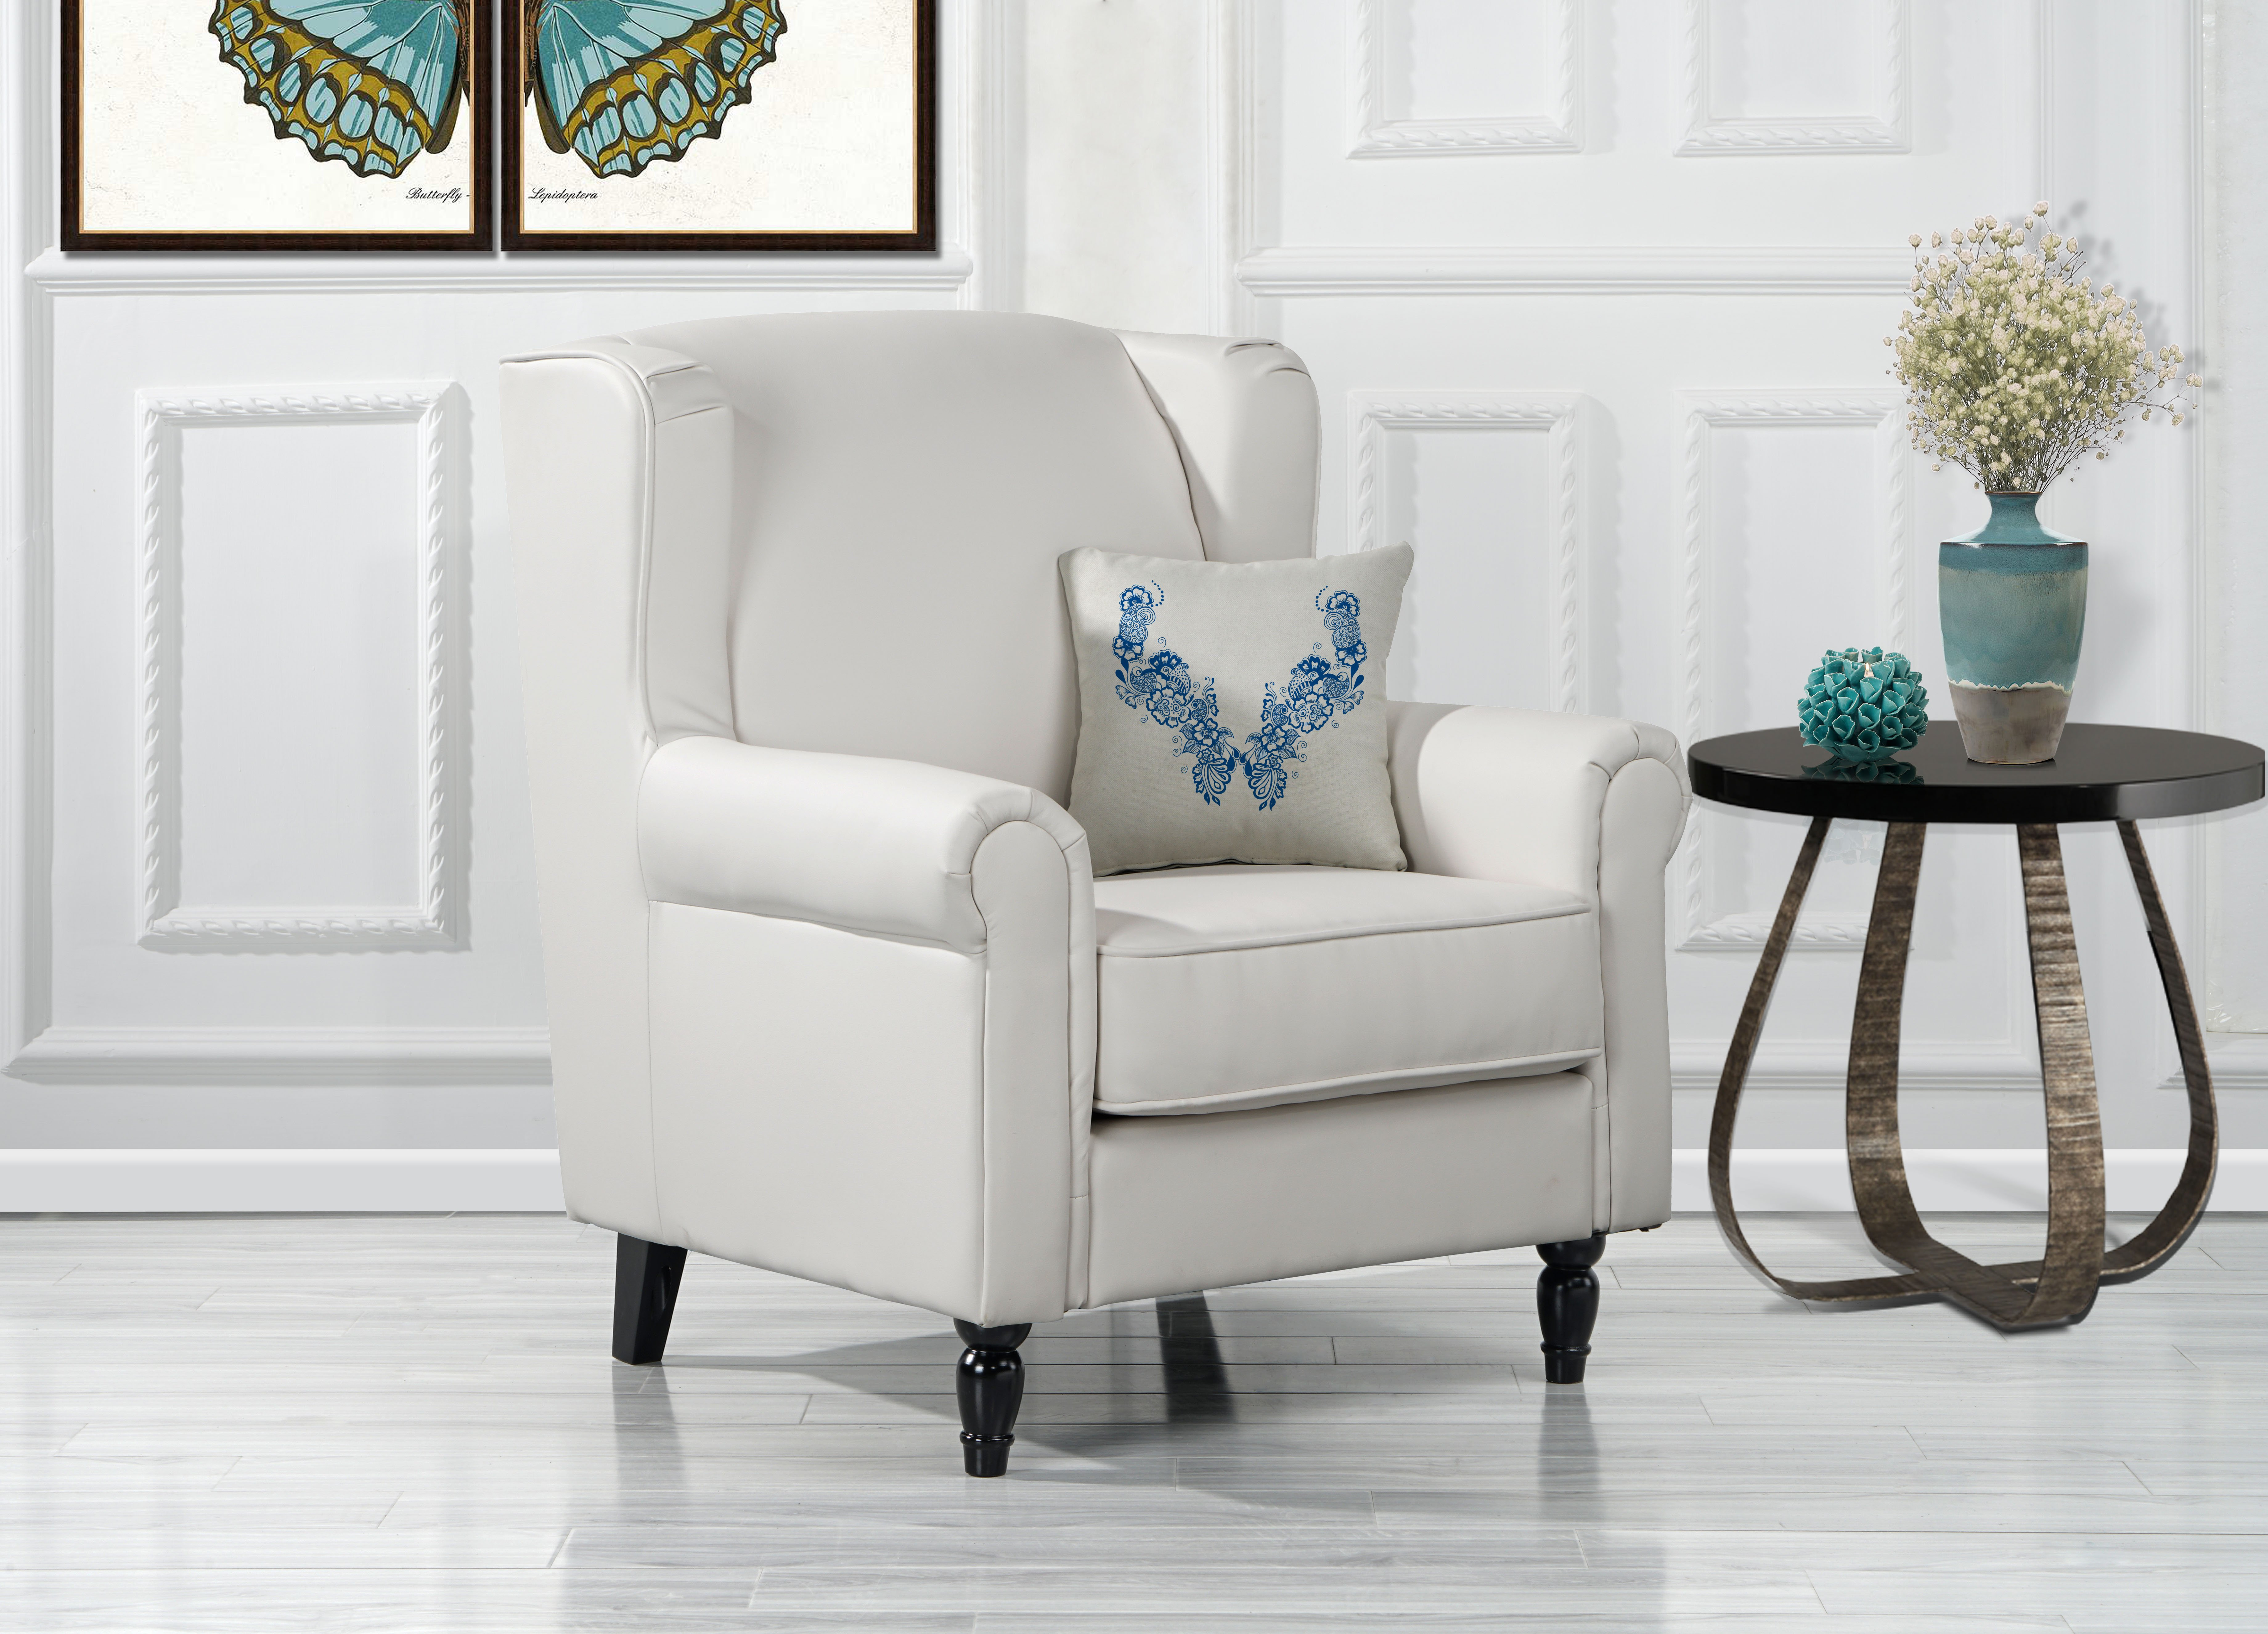 Classic Scroll Arm Faux Leather Accent Chair  Living Room Armchair  White 649862749582